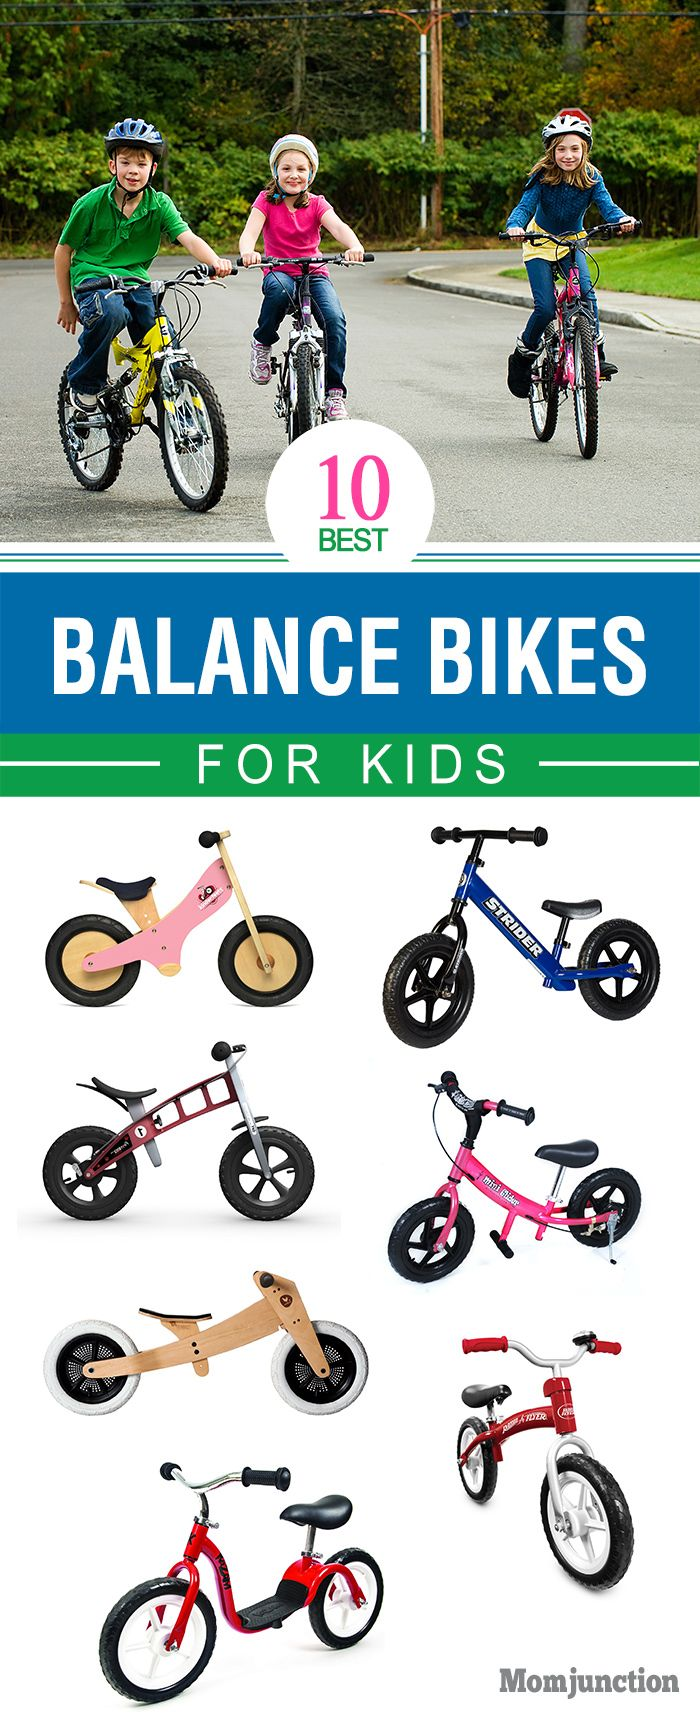 10 Best Balance Bikes For Kids Browse Through Our Compilation Of